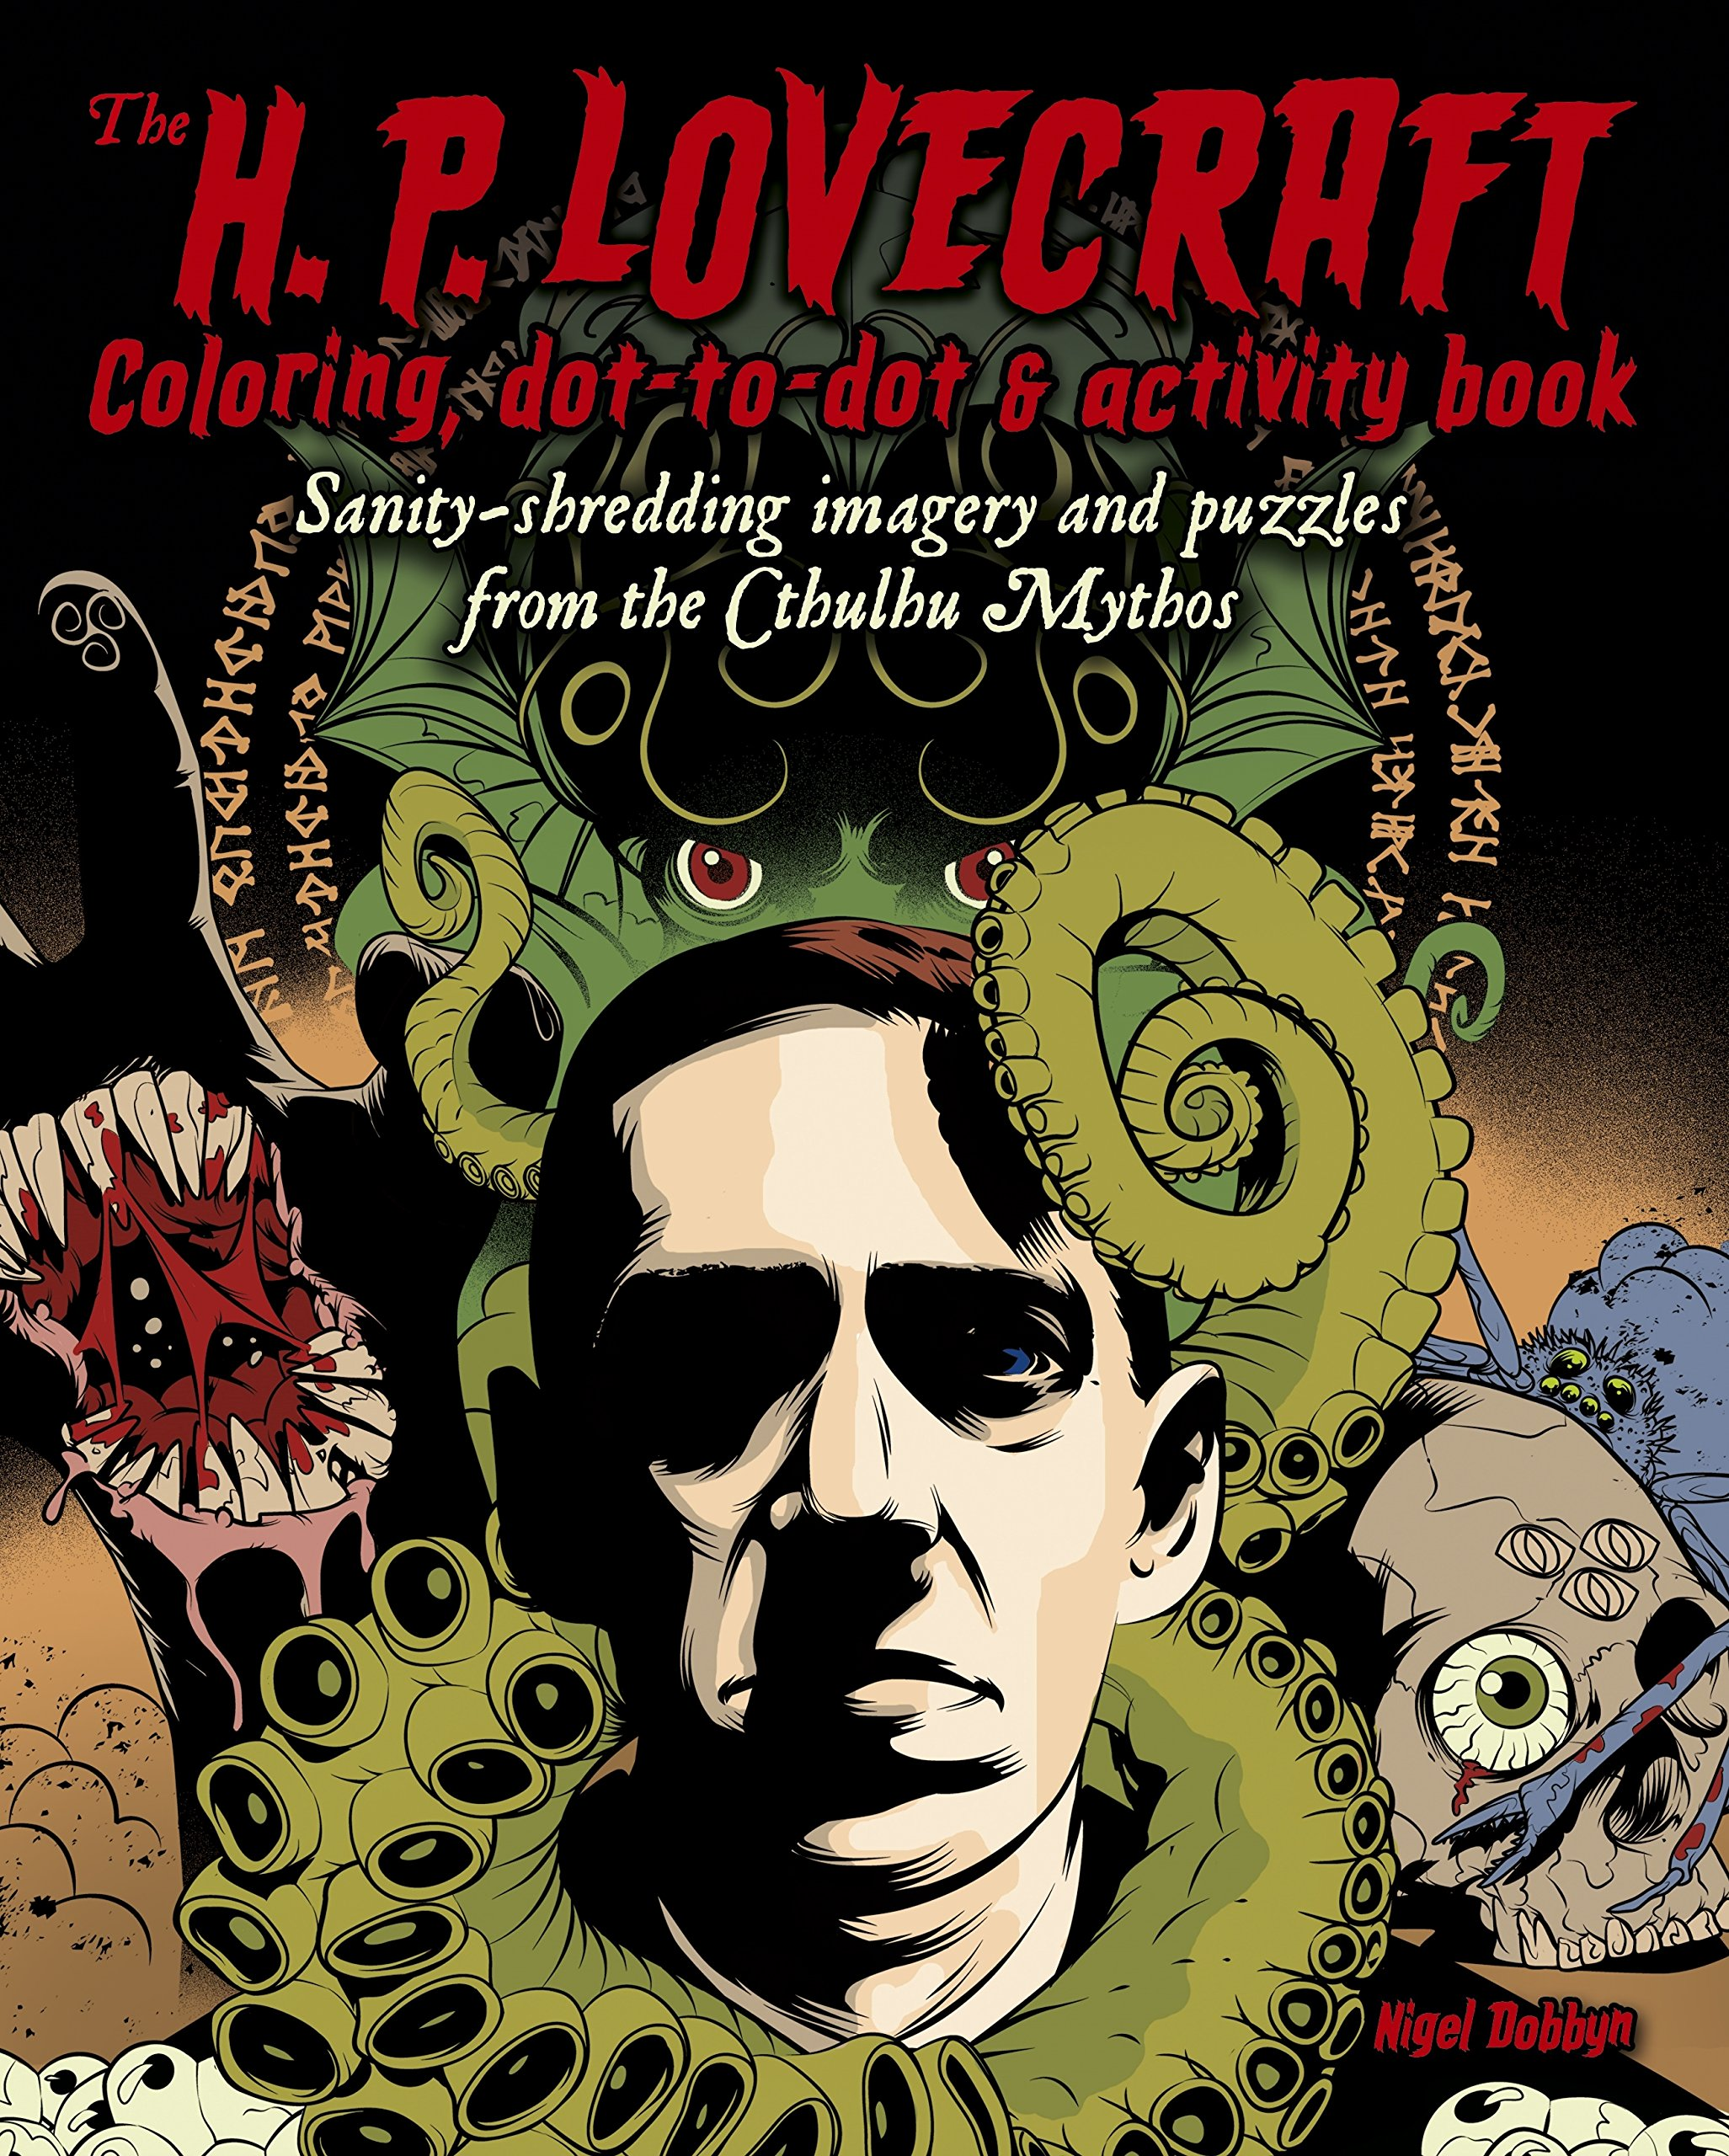 Amazon.com: The H. P. Lovecraft Coloring, Dot-to-Dot & Activity Book ...